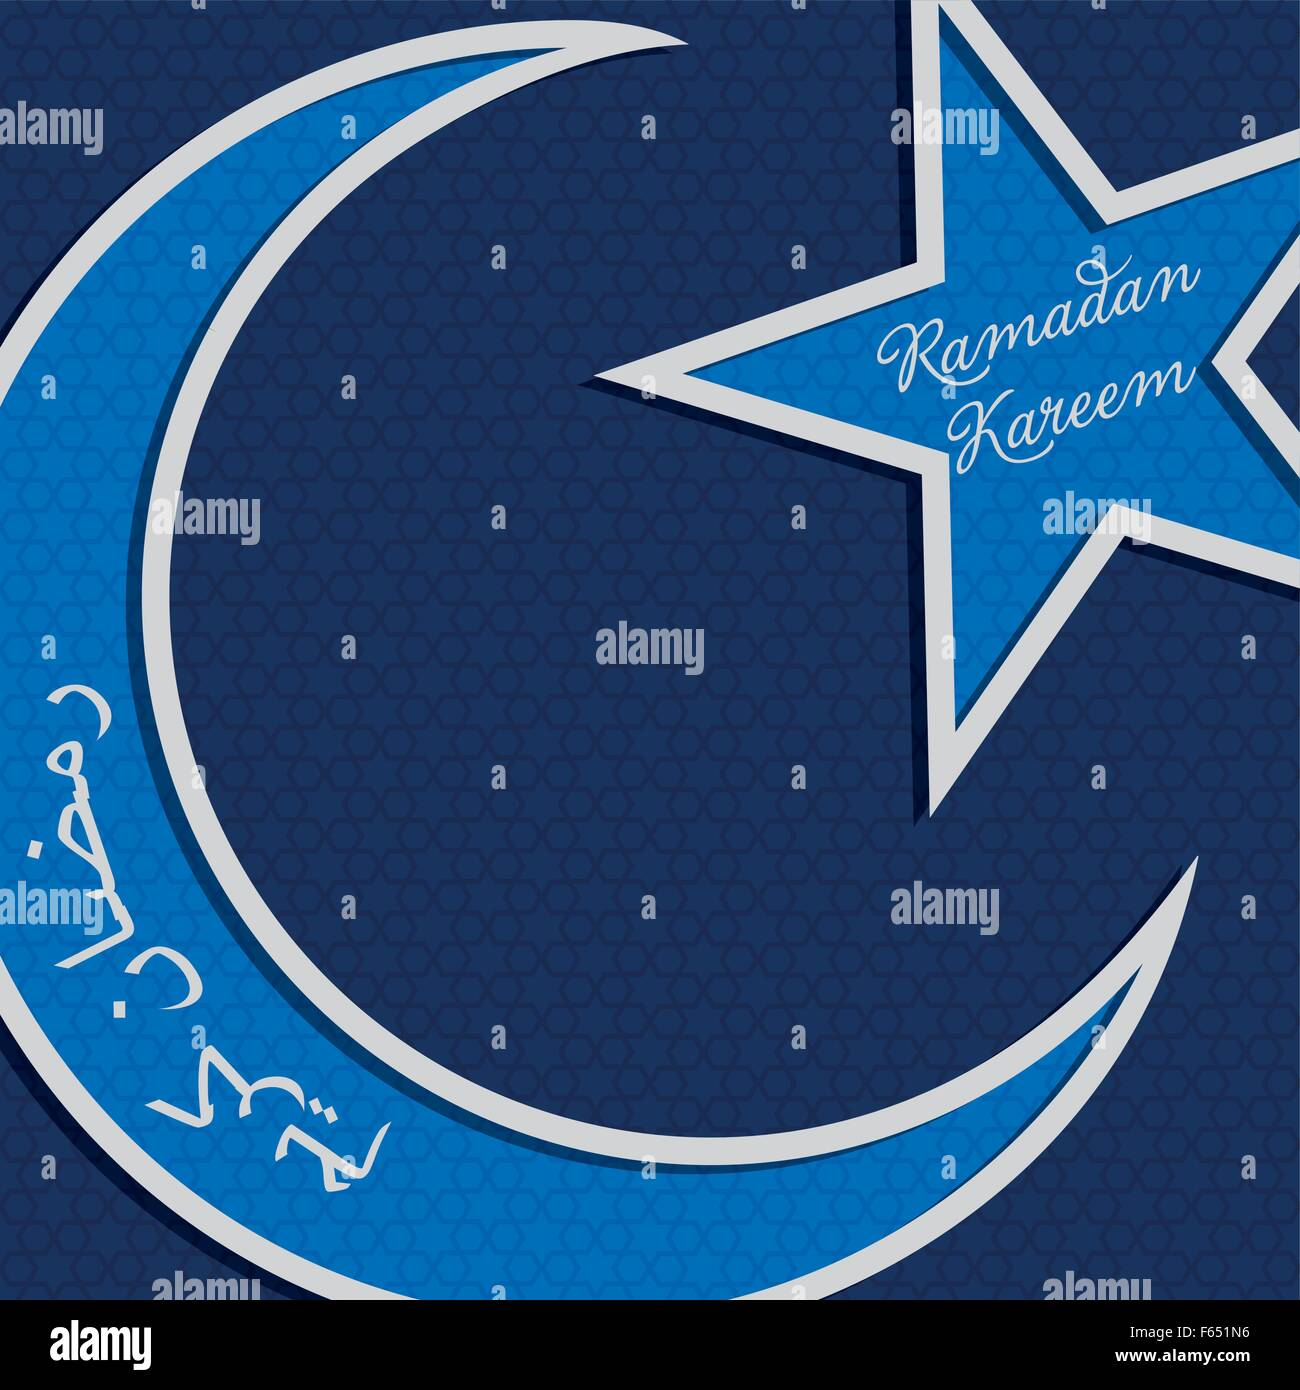 Silver Crescent Moon And Star Outline Ramadan Kareem